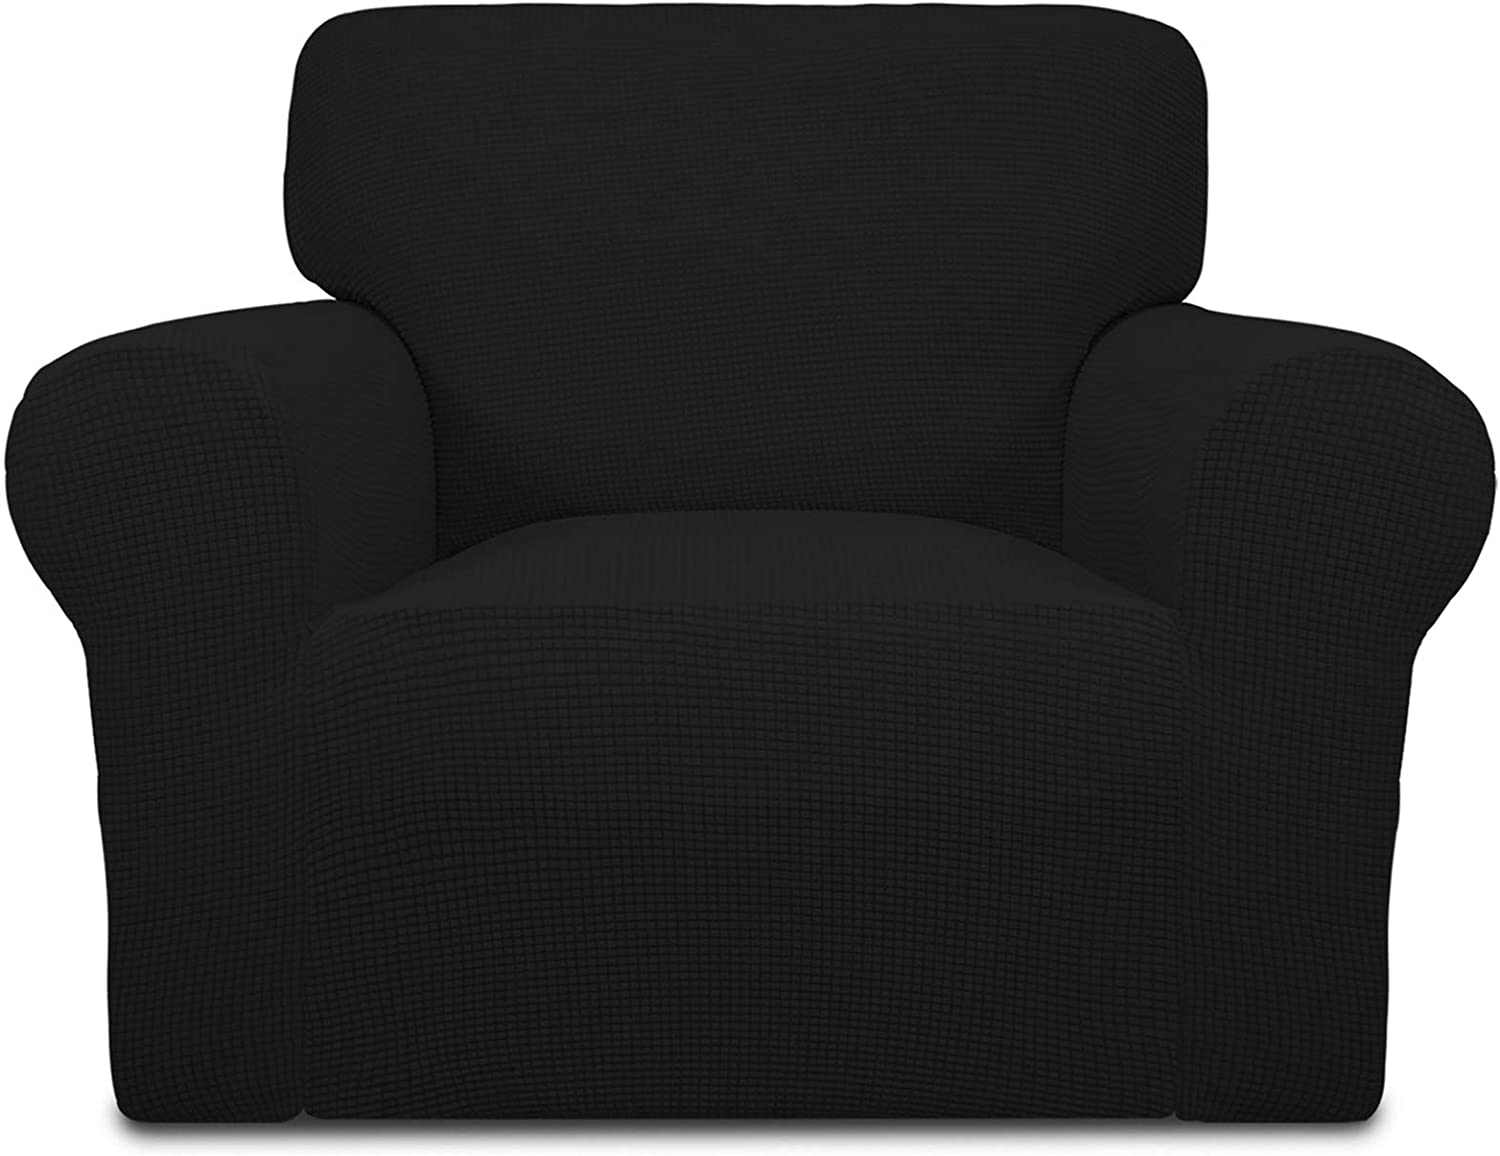 Easy-Going Stretch Oversized Chair Sofa Slipcover 1-Piece Couch Sofa Cover Furniture Protector Soft with Elastic Bottom for Kids Spandex Jacquard Fabric Small Checks Black